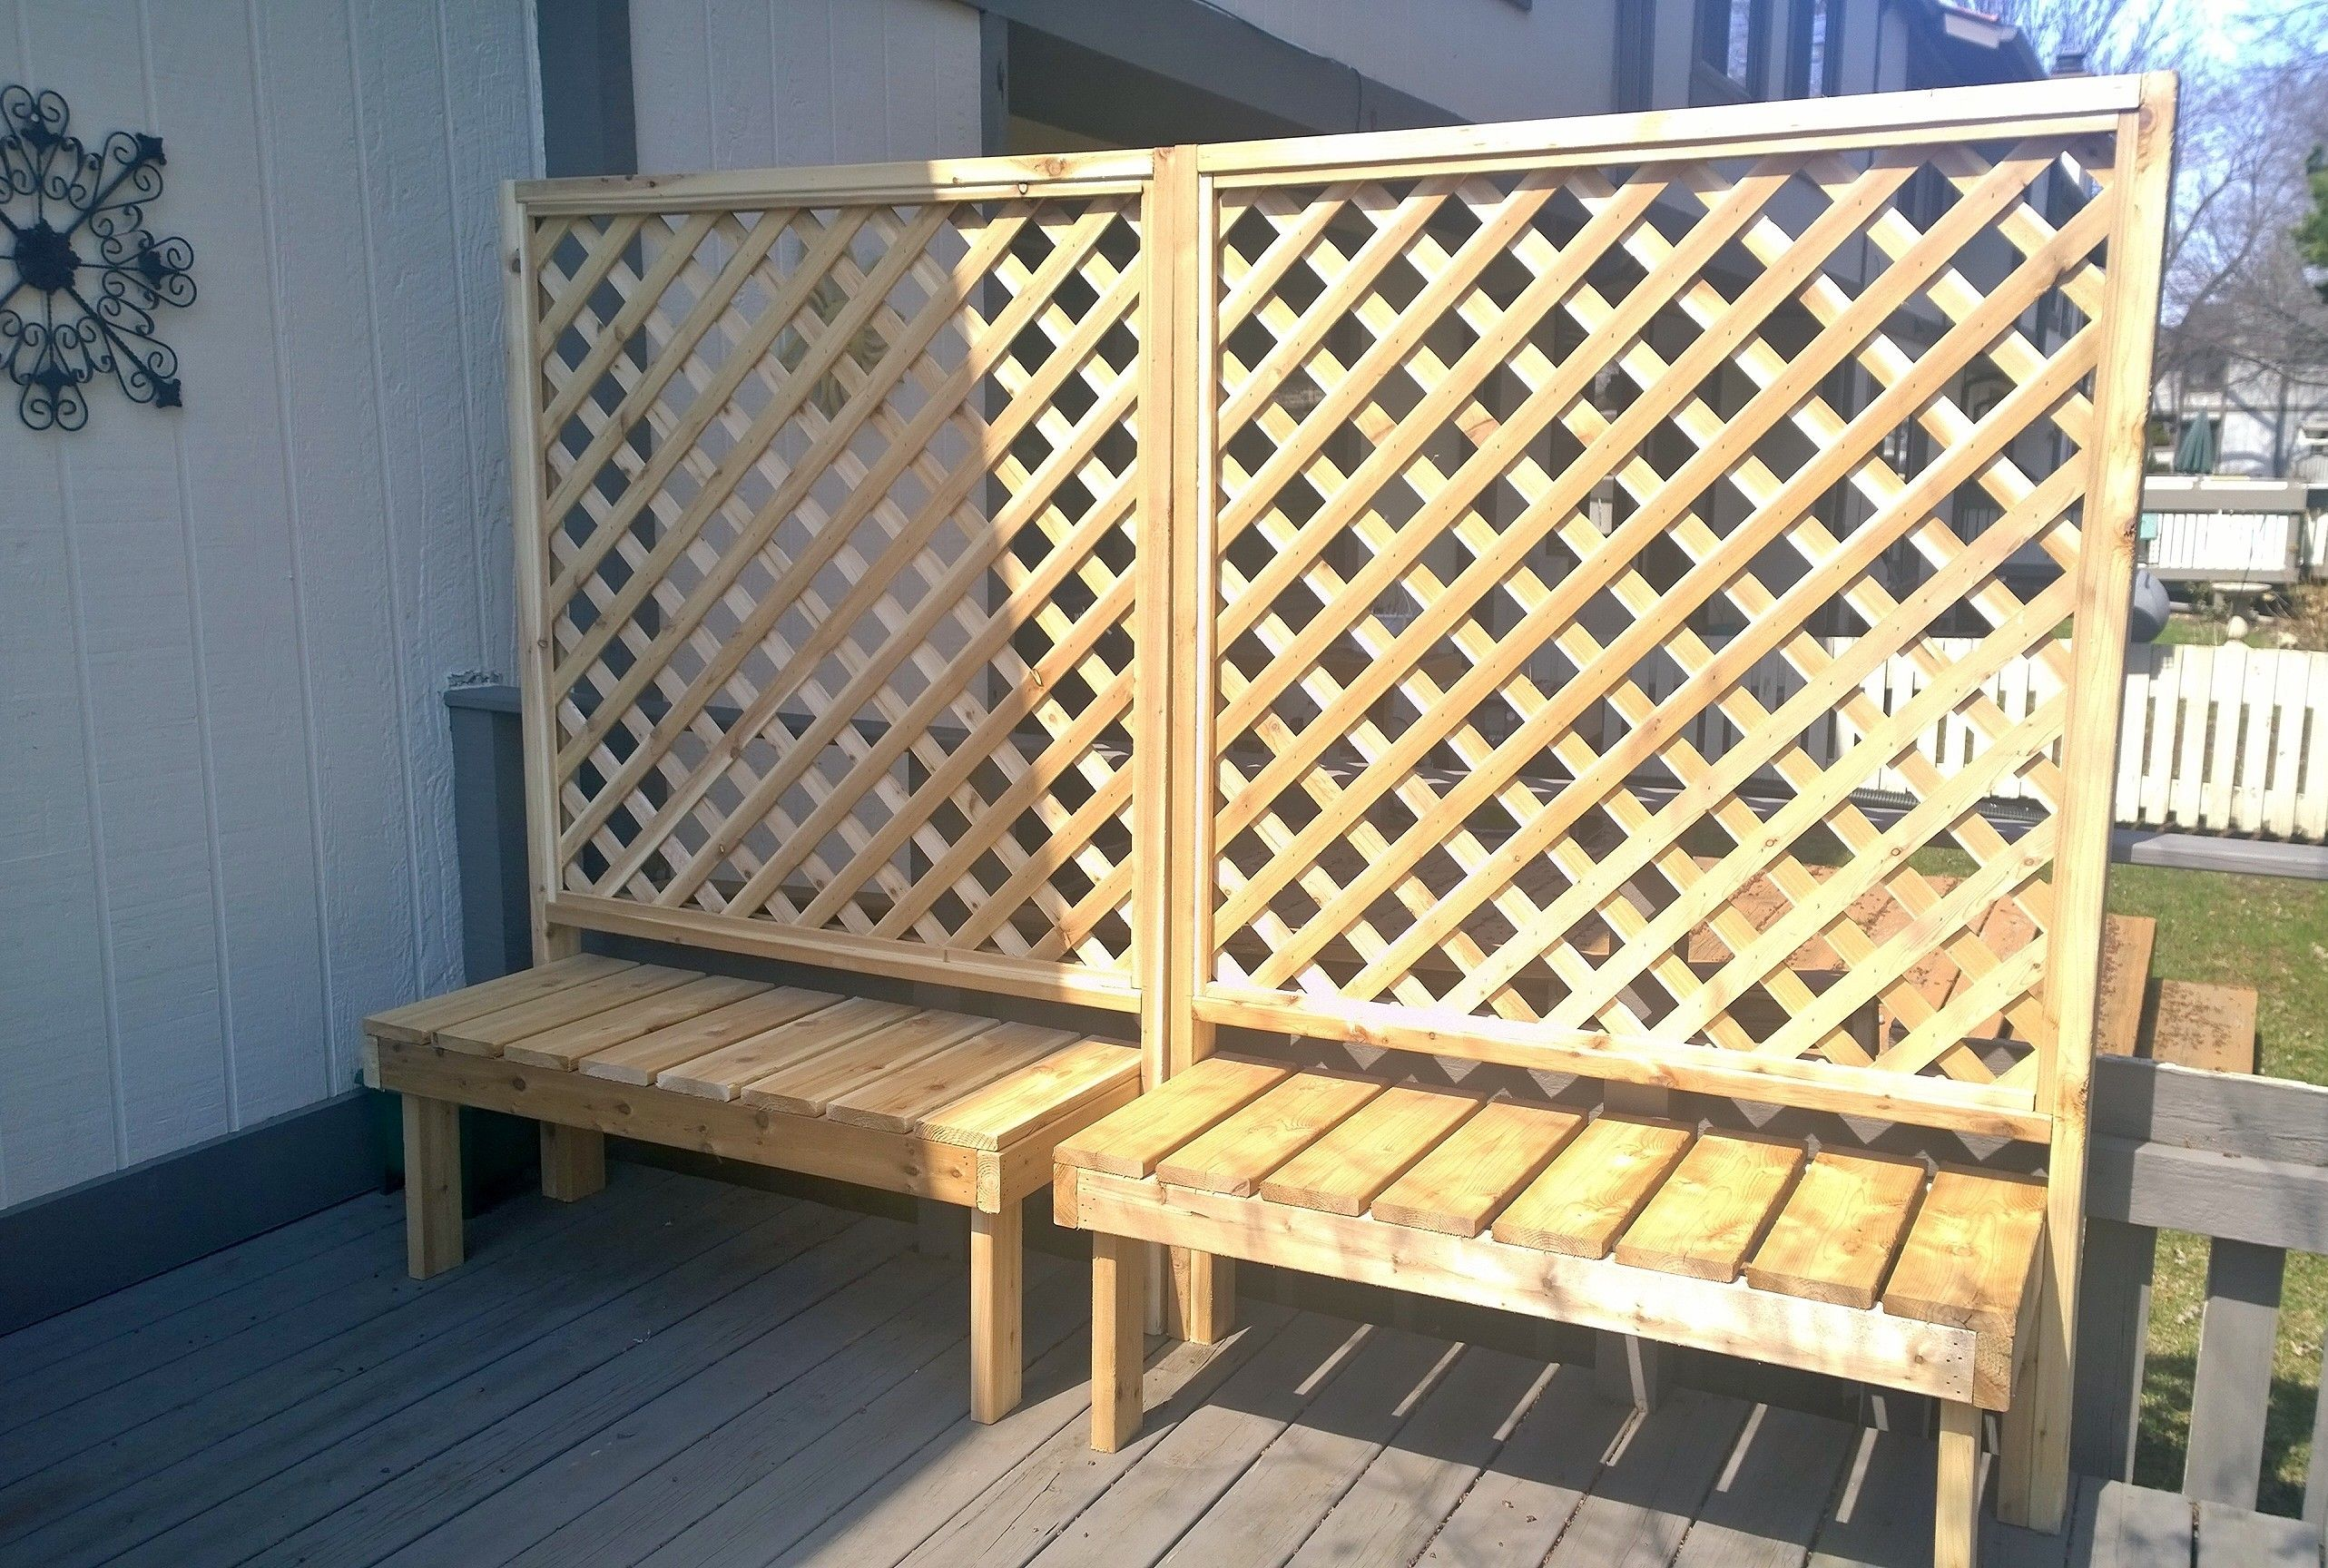 Trellis / Privacy benches for our townhouse deck | Gardens & Food ...